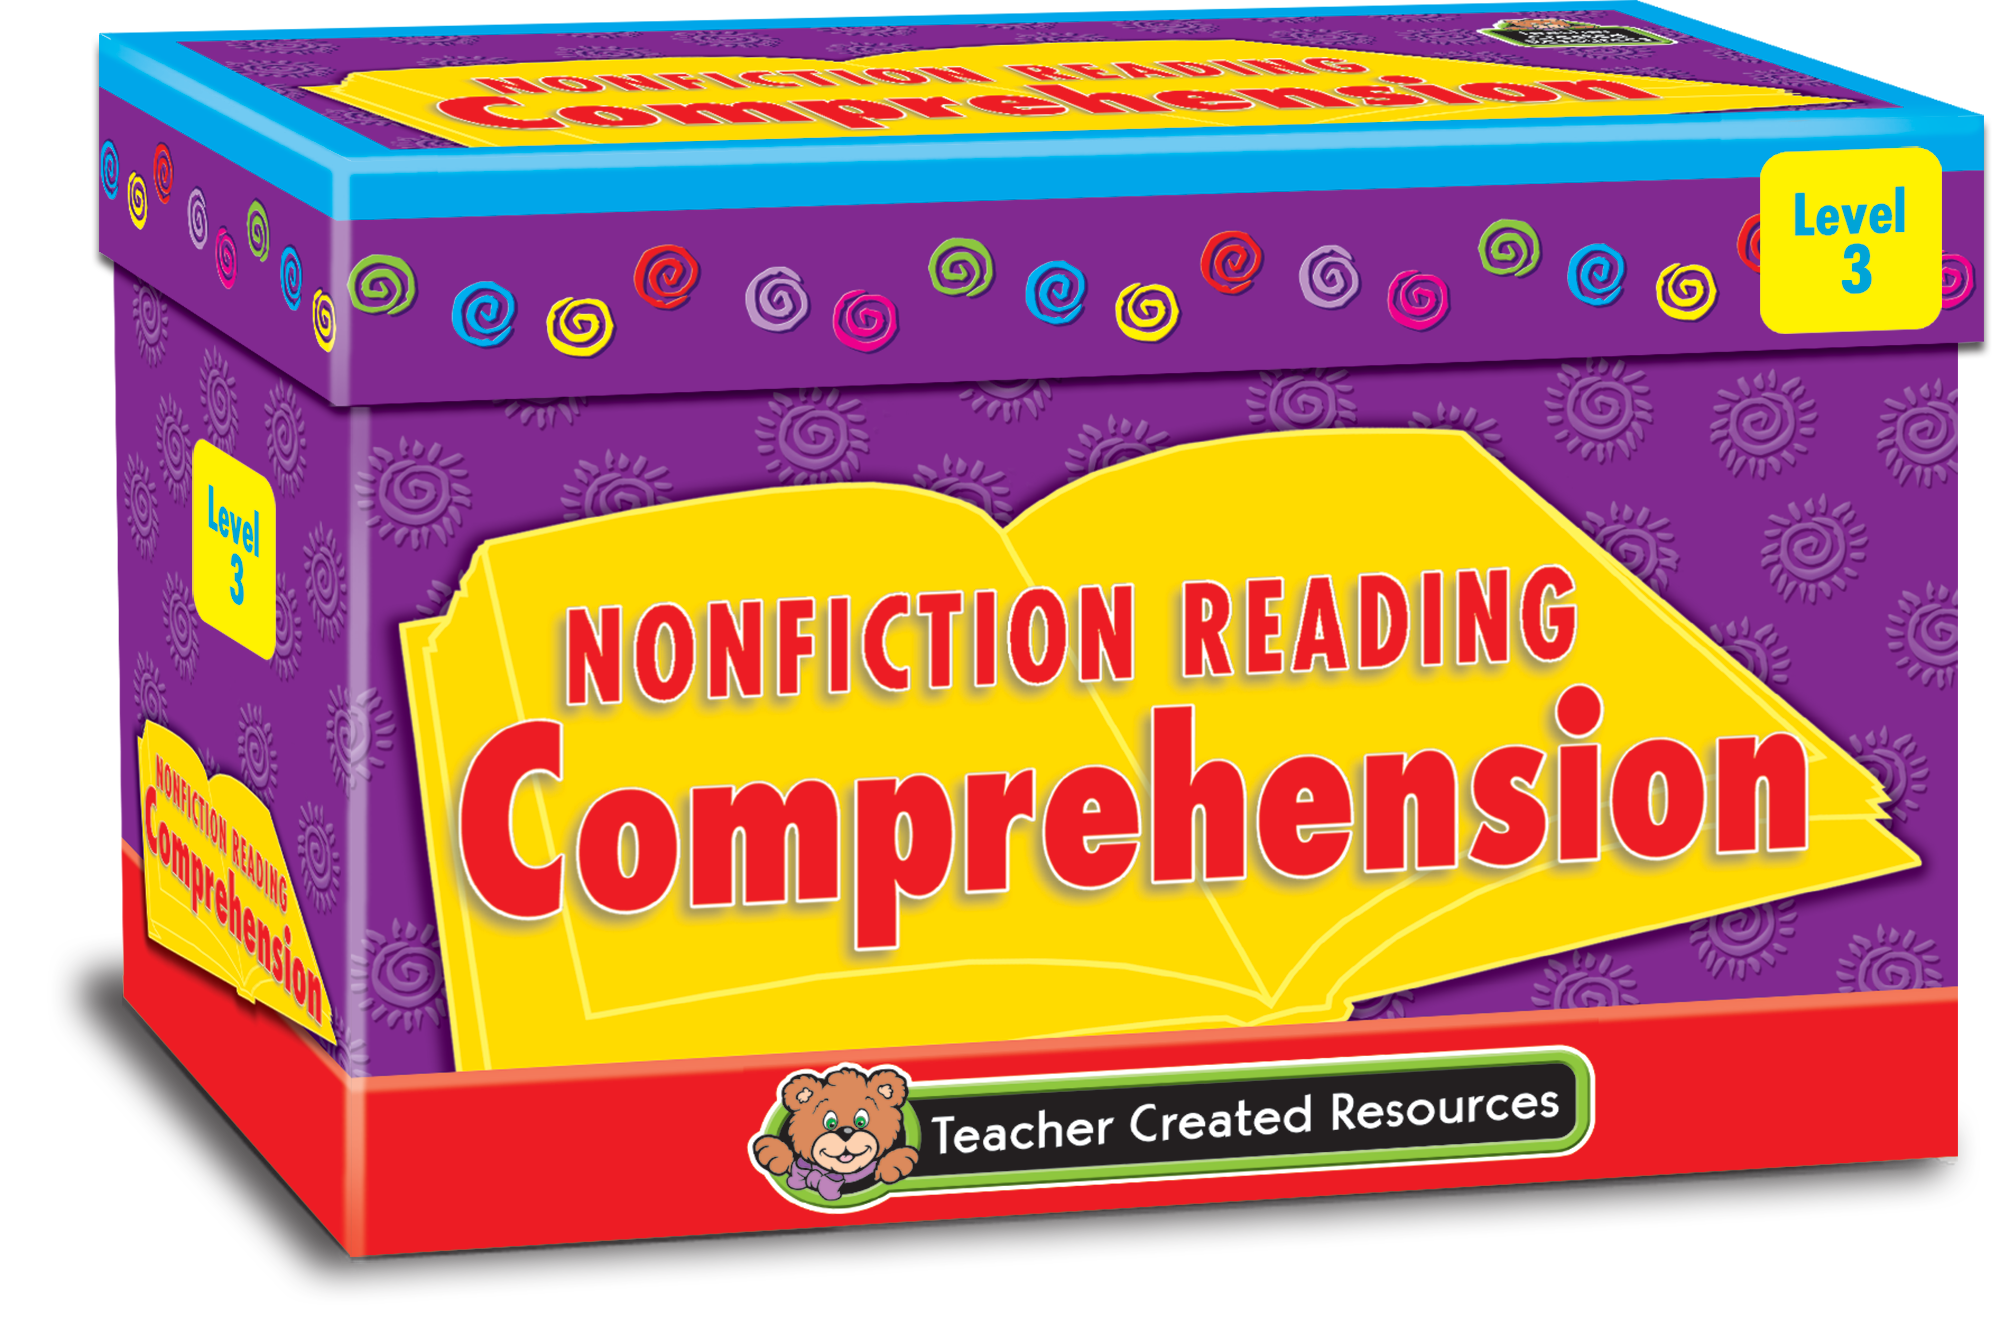 Worksheet Level 5 Reading Comprehension nonfiction reading comprehension cards level 5 tcr3057 3